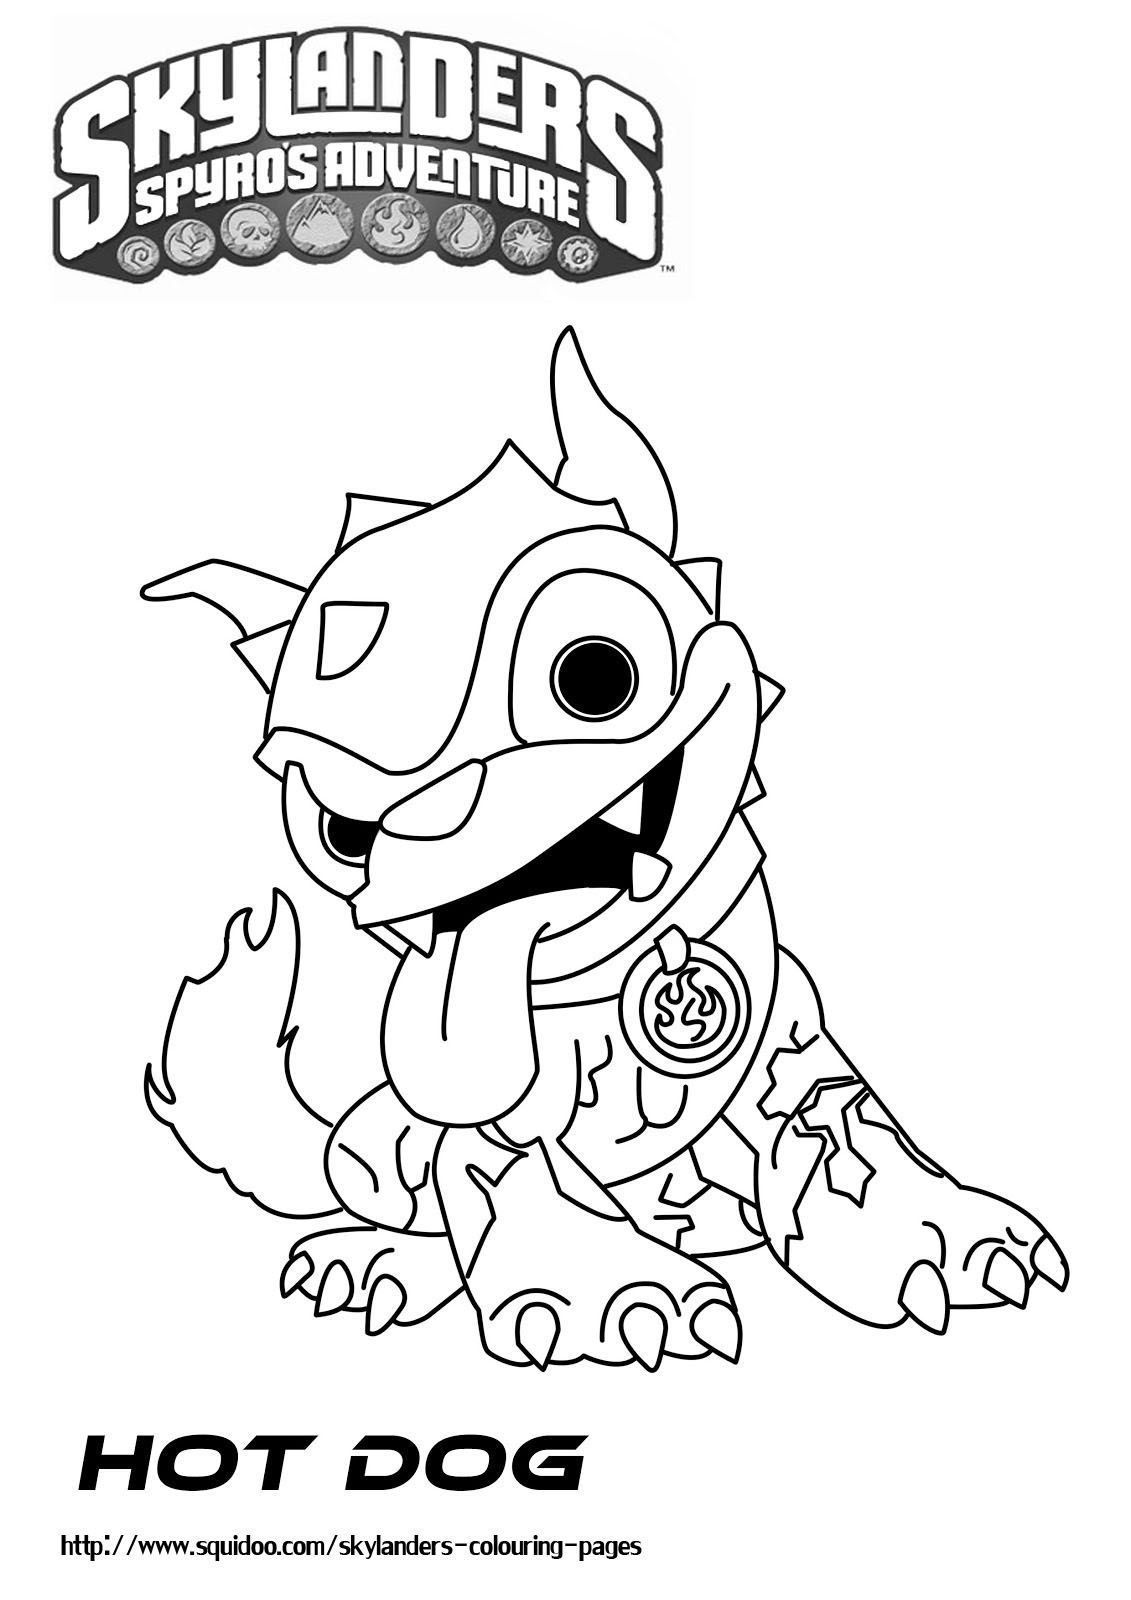 Skylanders Printable Coloring Pages Skylanders Bedroom